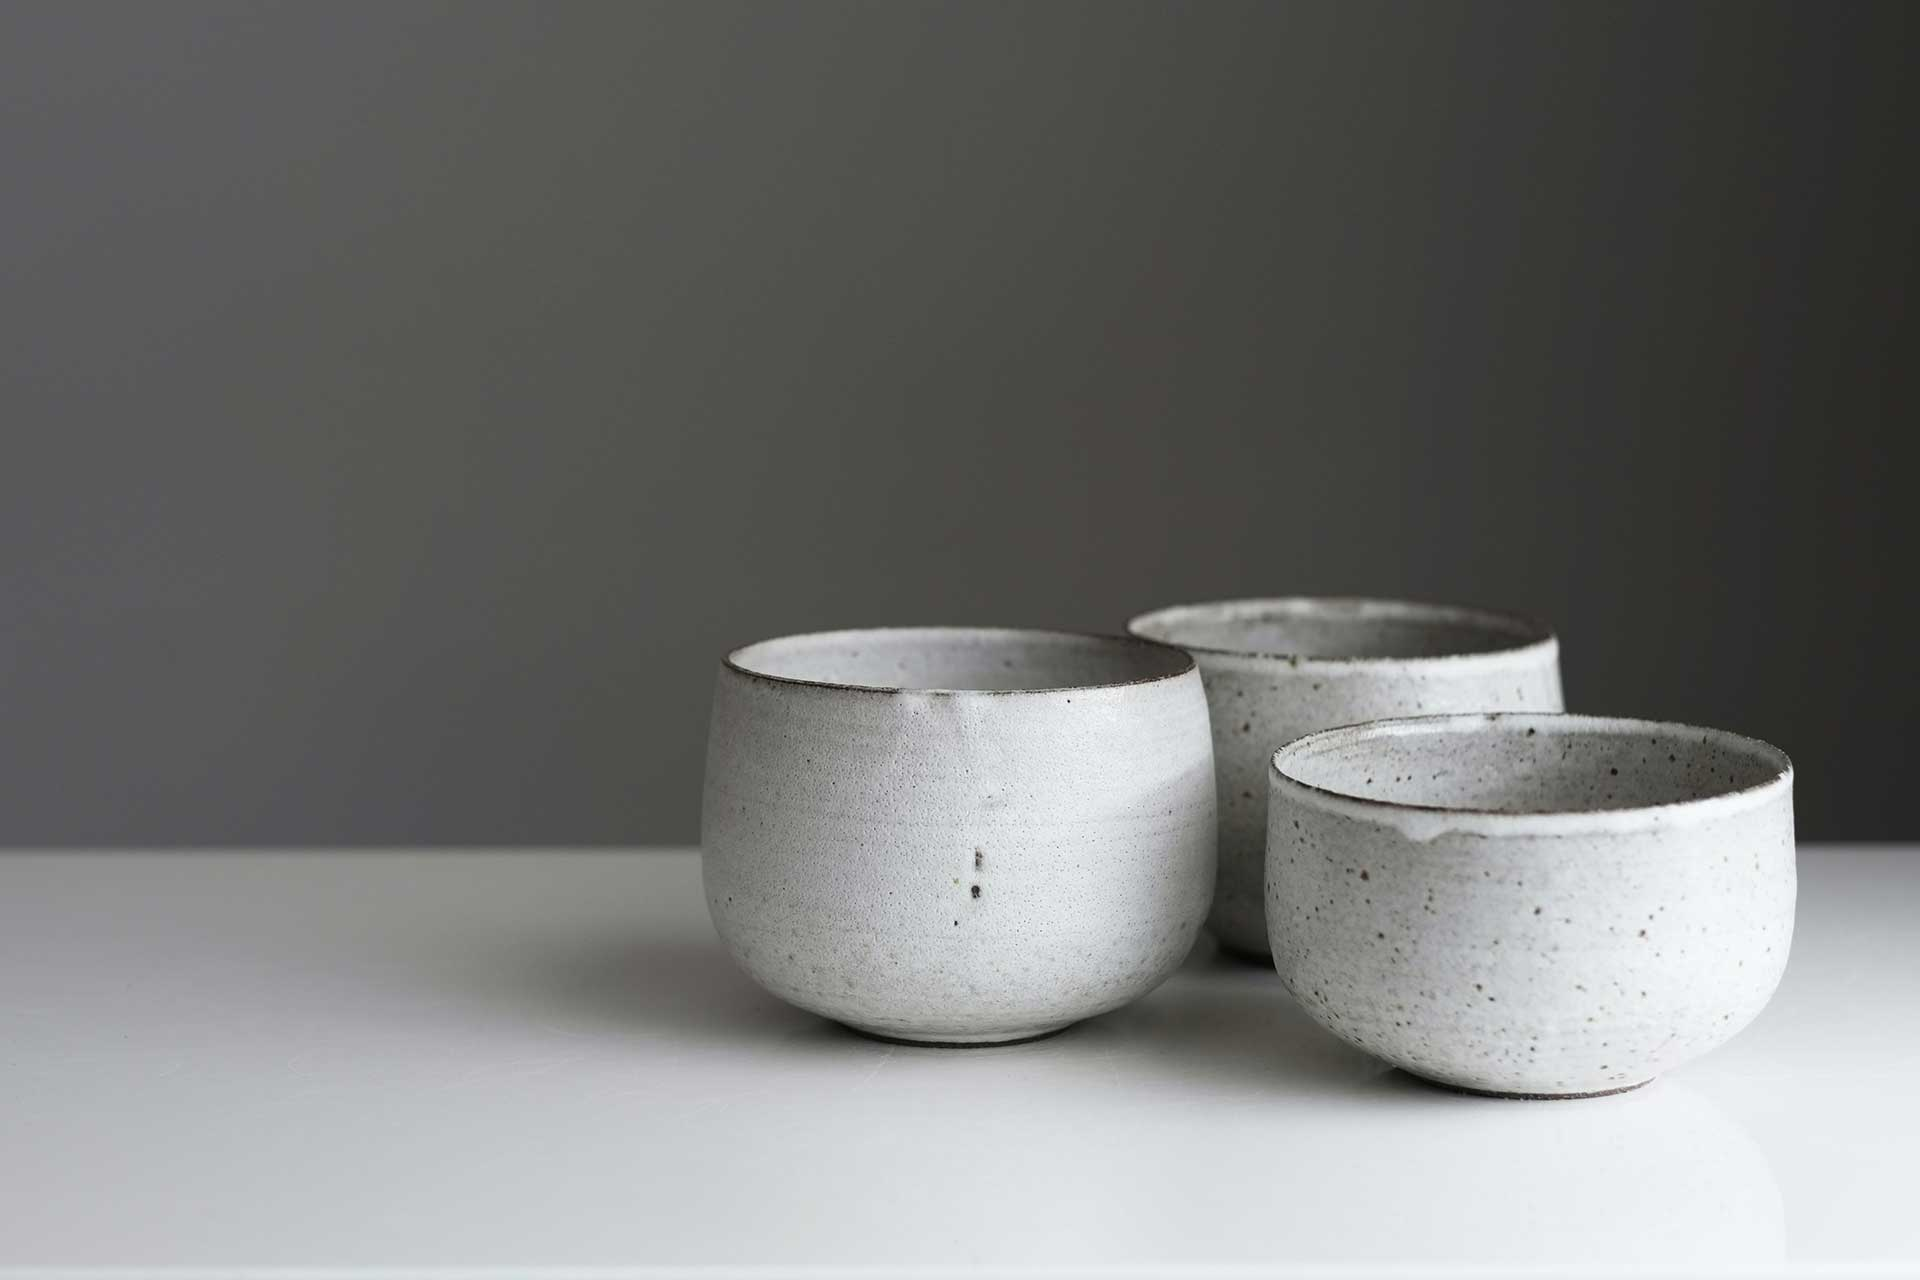 three gray speckled ceramic bowls on a table